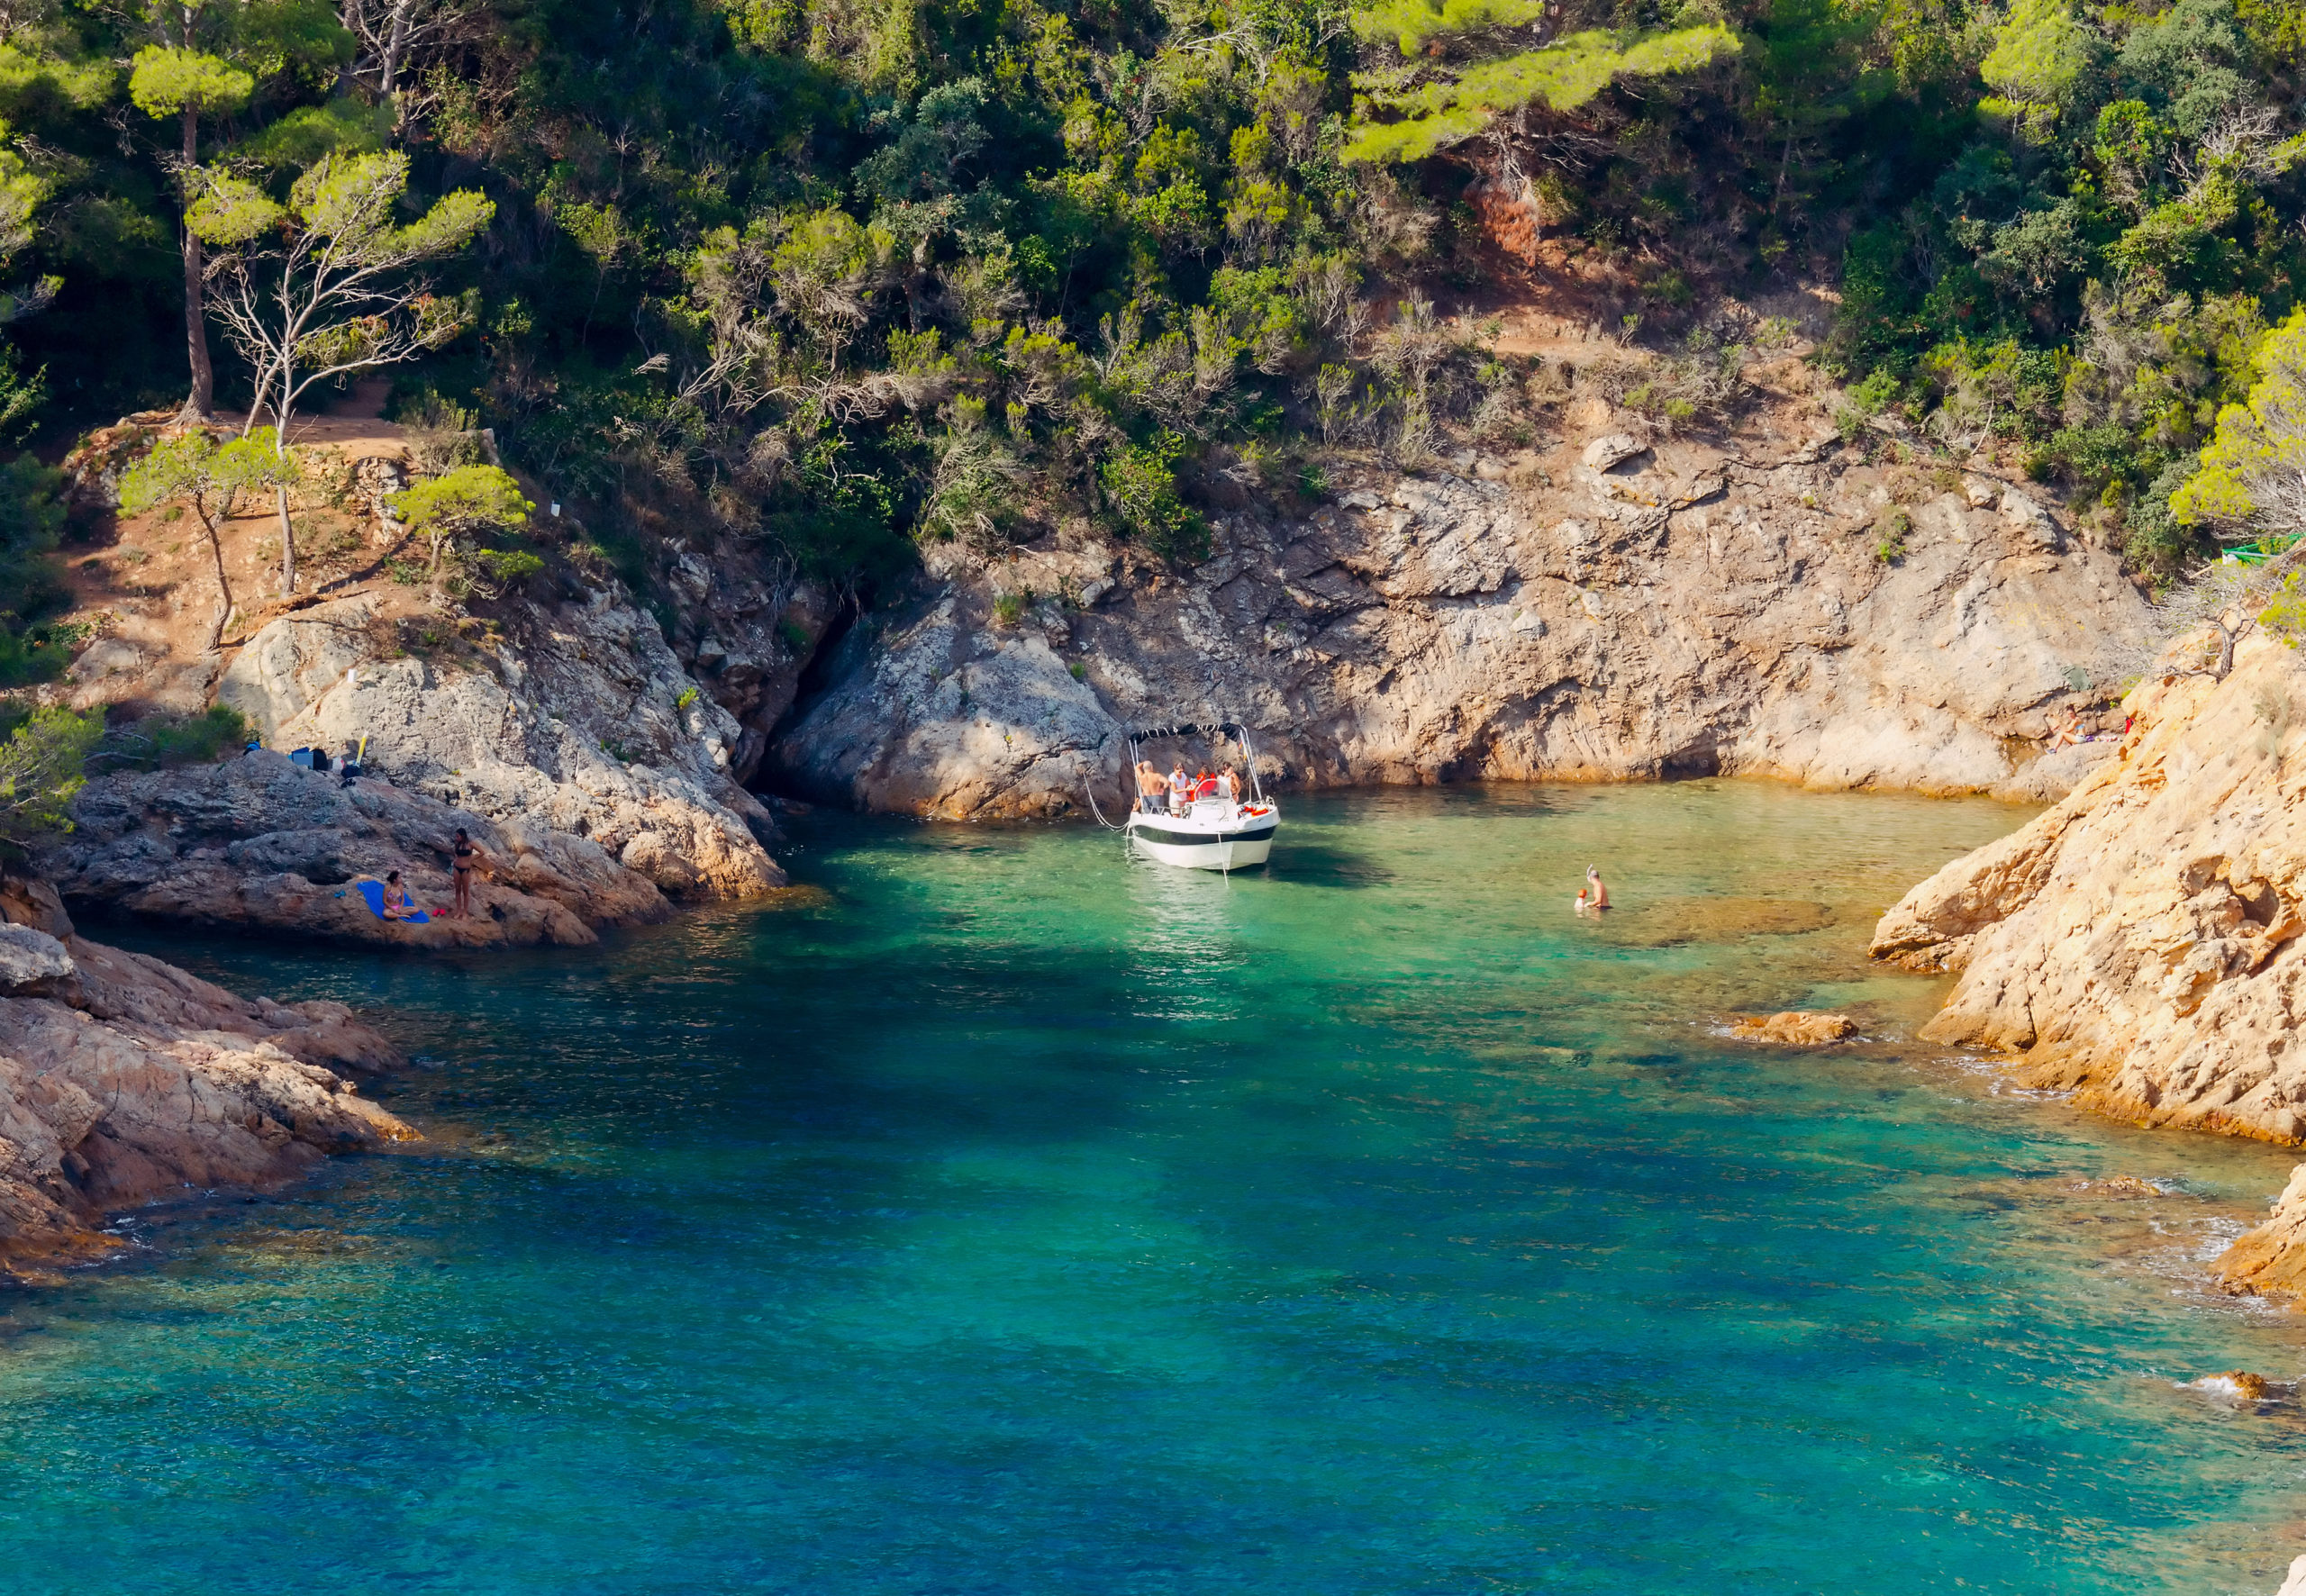 One of the wonders of the Costa Brava, its coves